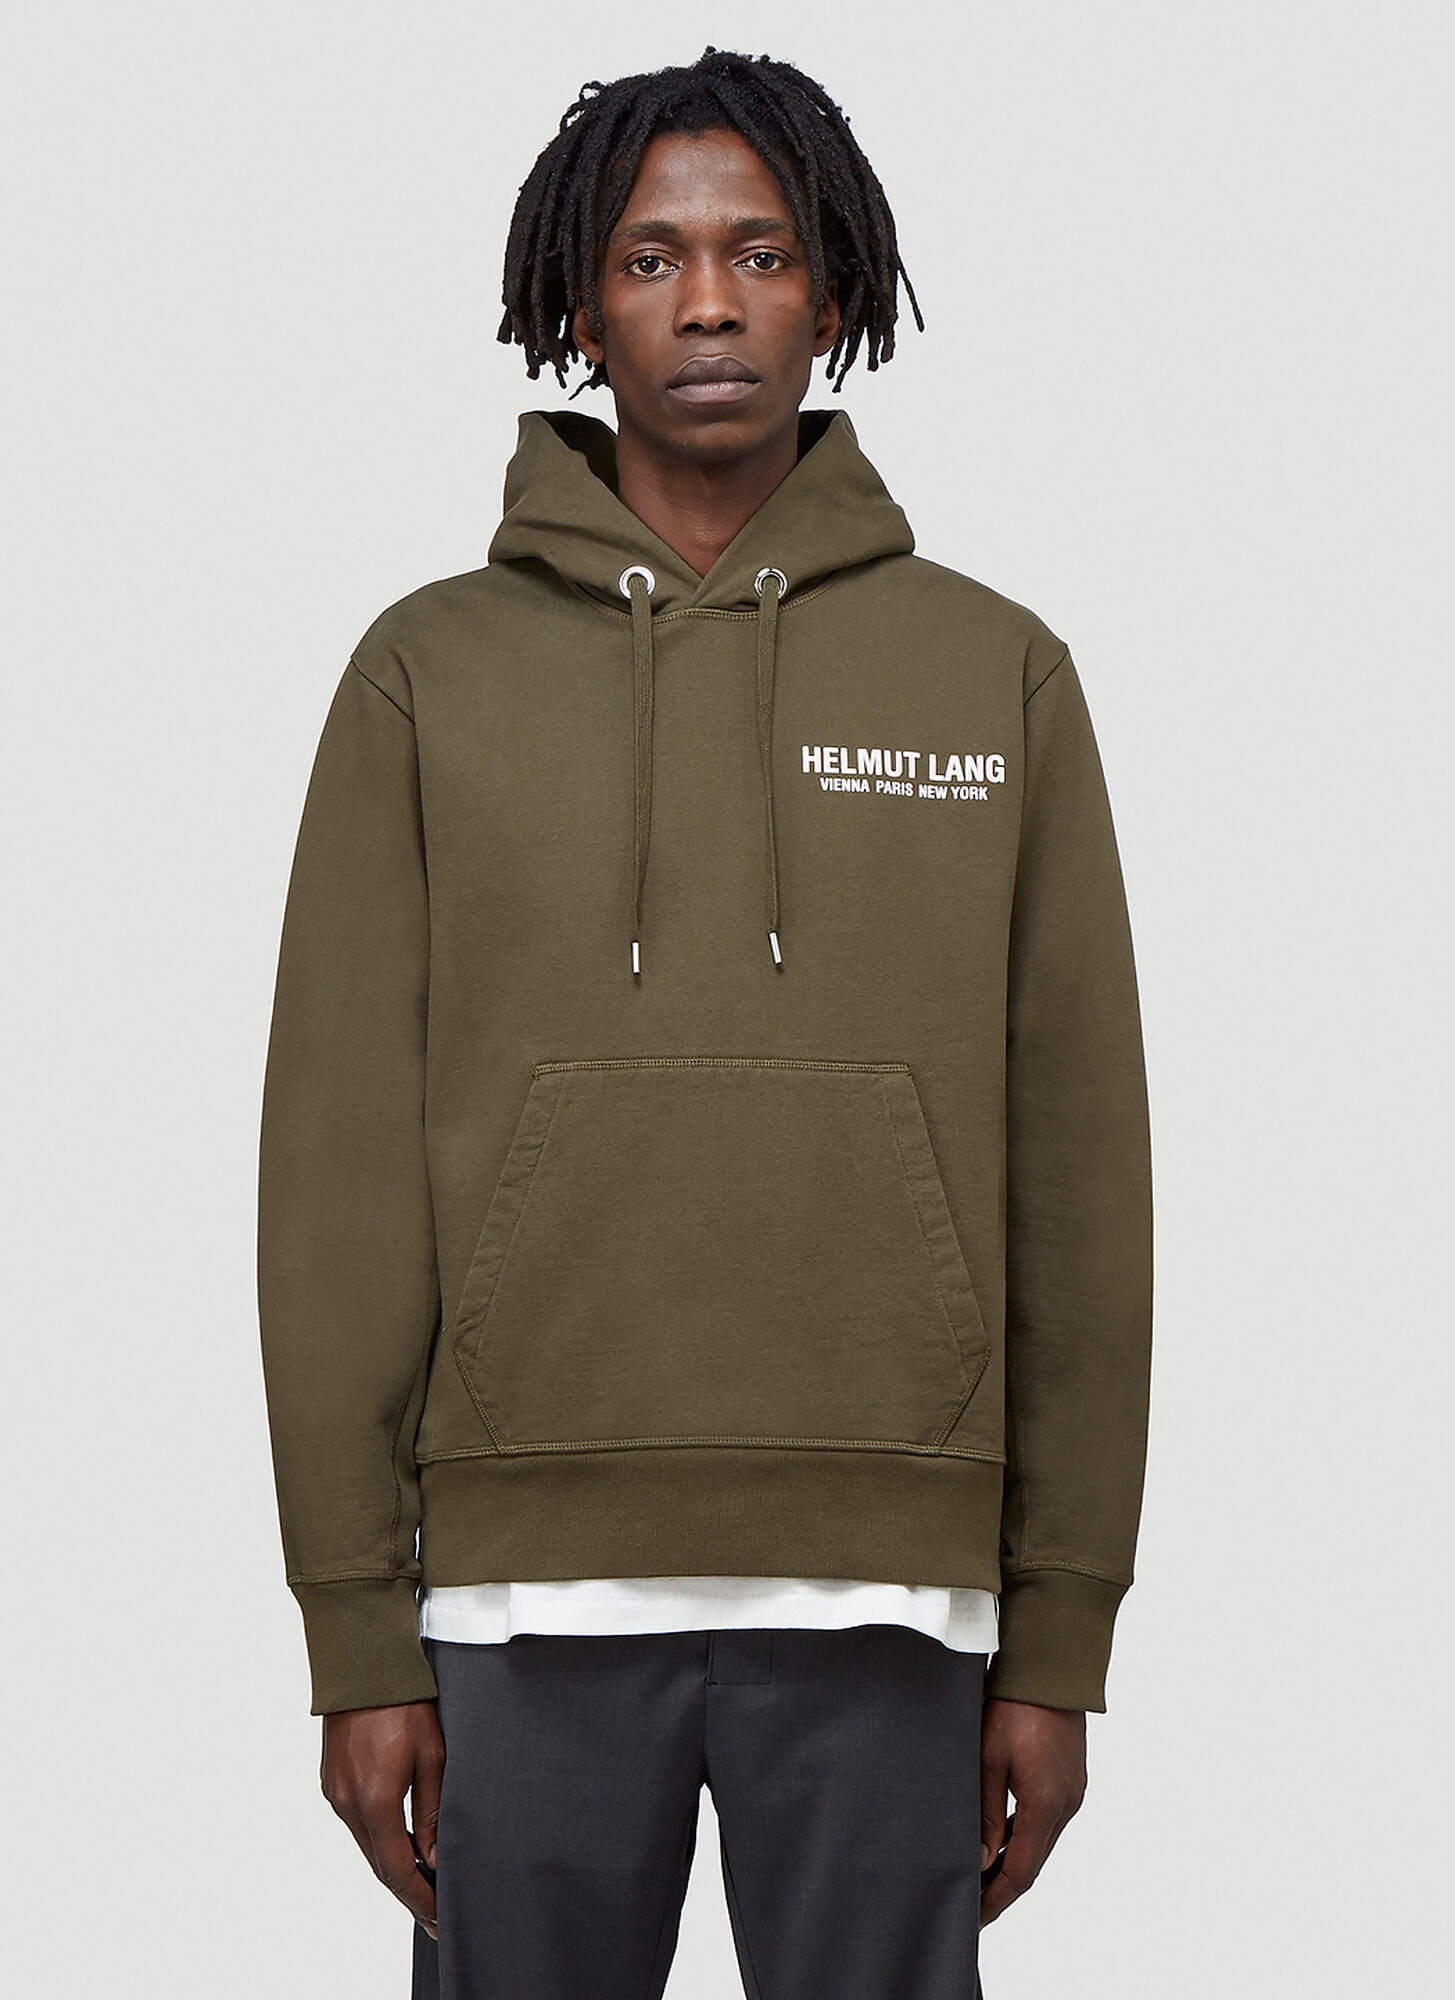 Helmut Lang Strap Hooded Sweatshirt